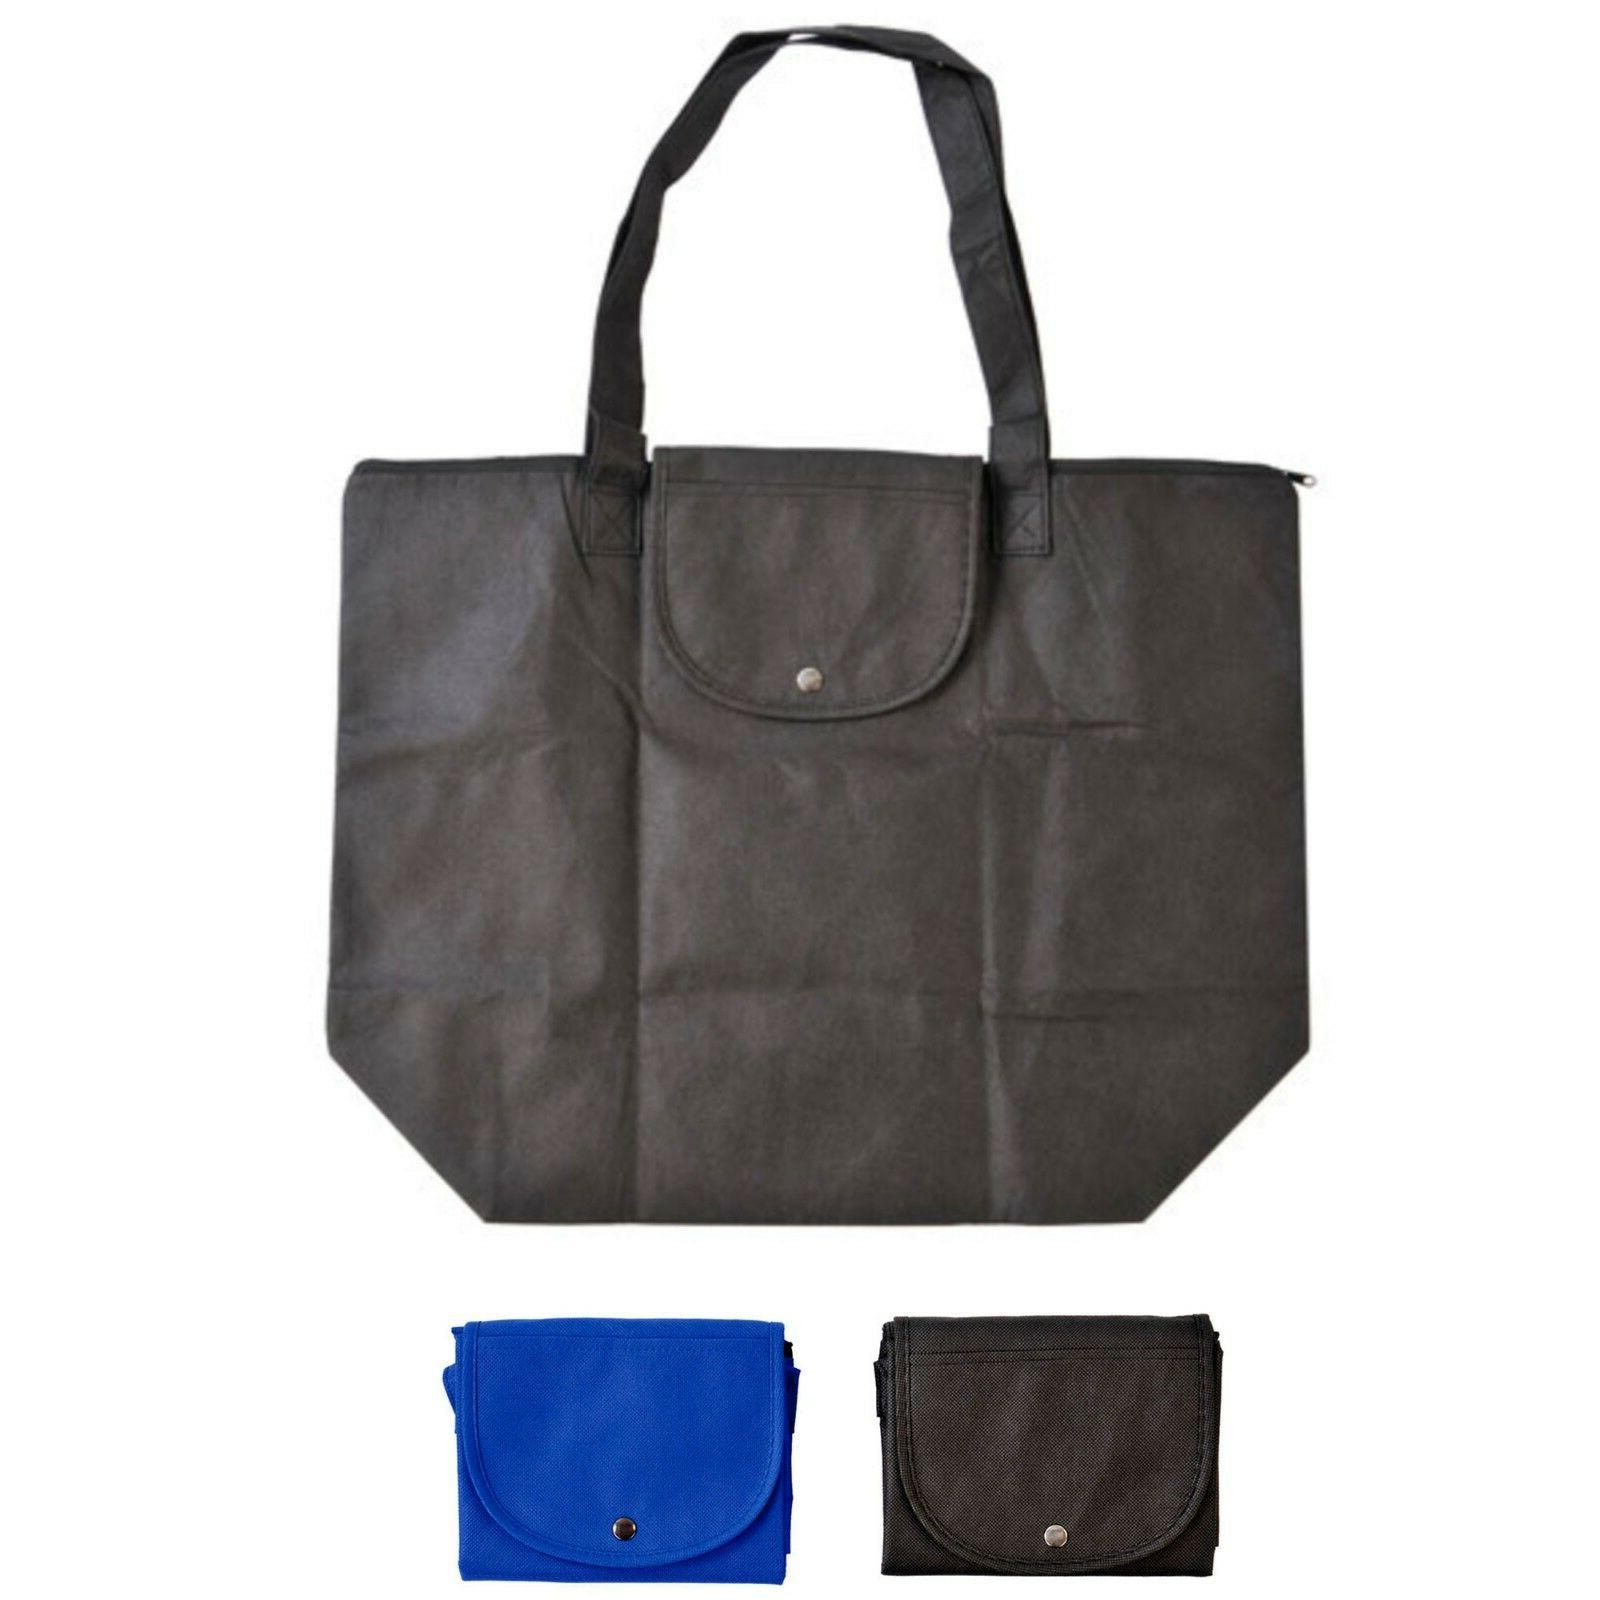 3 pack reusable large grocery shopping bag